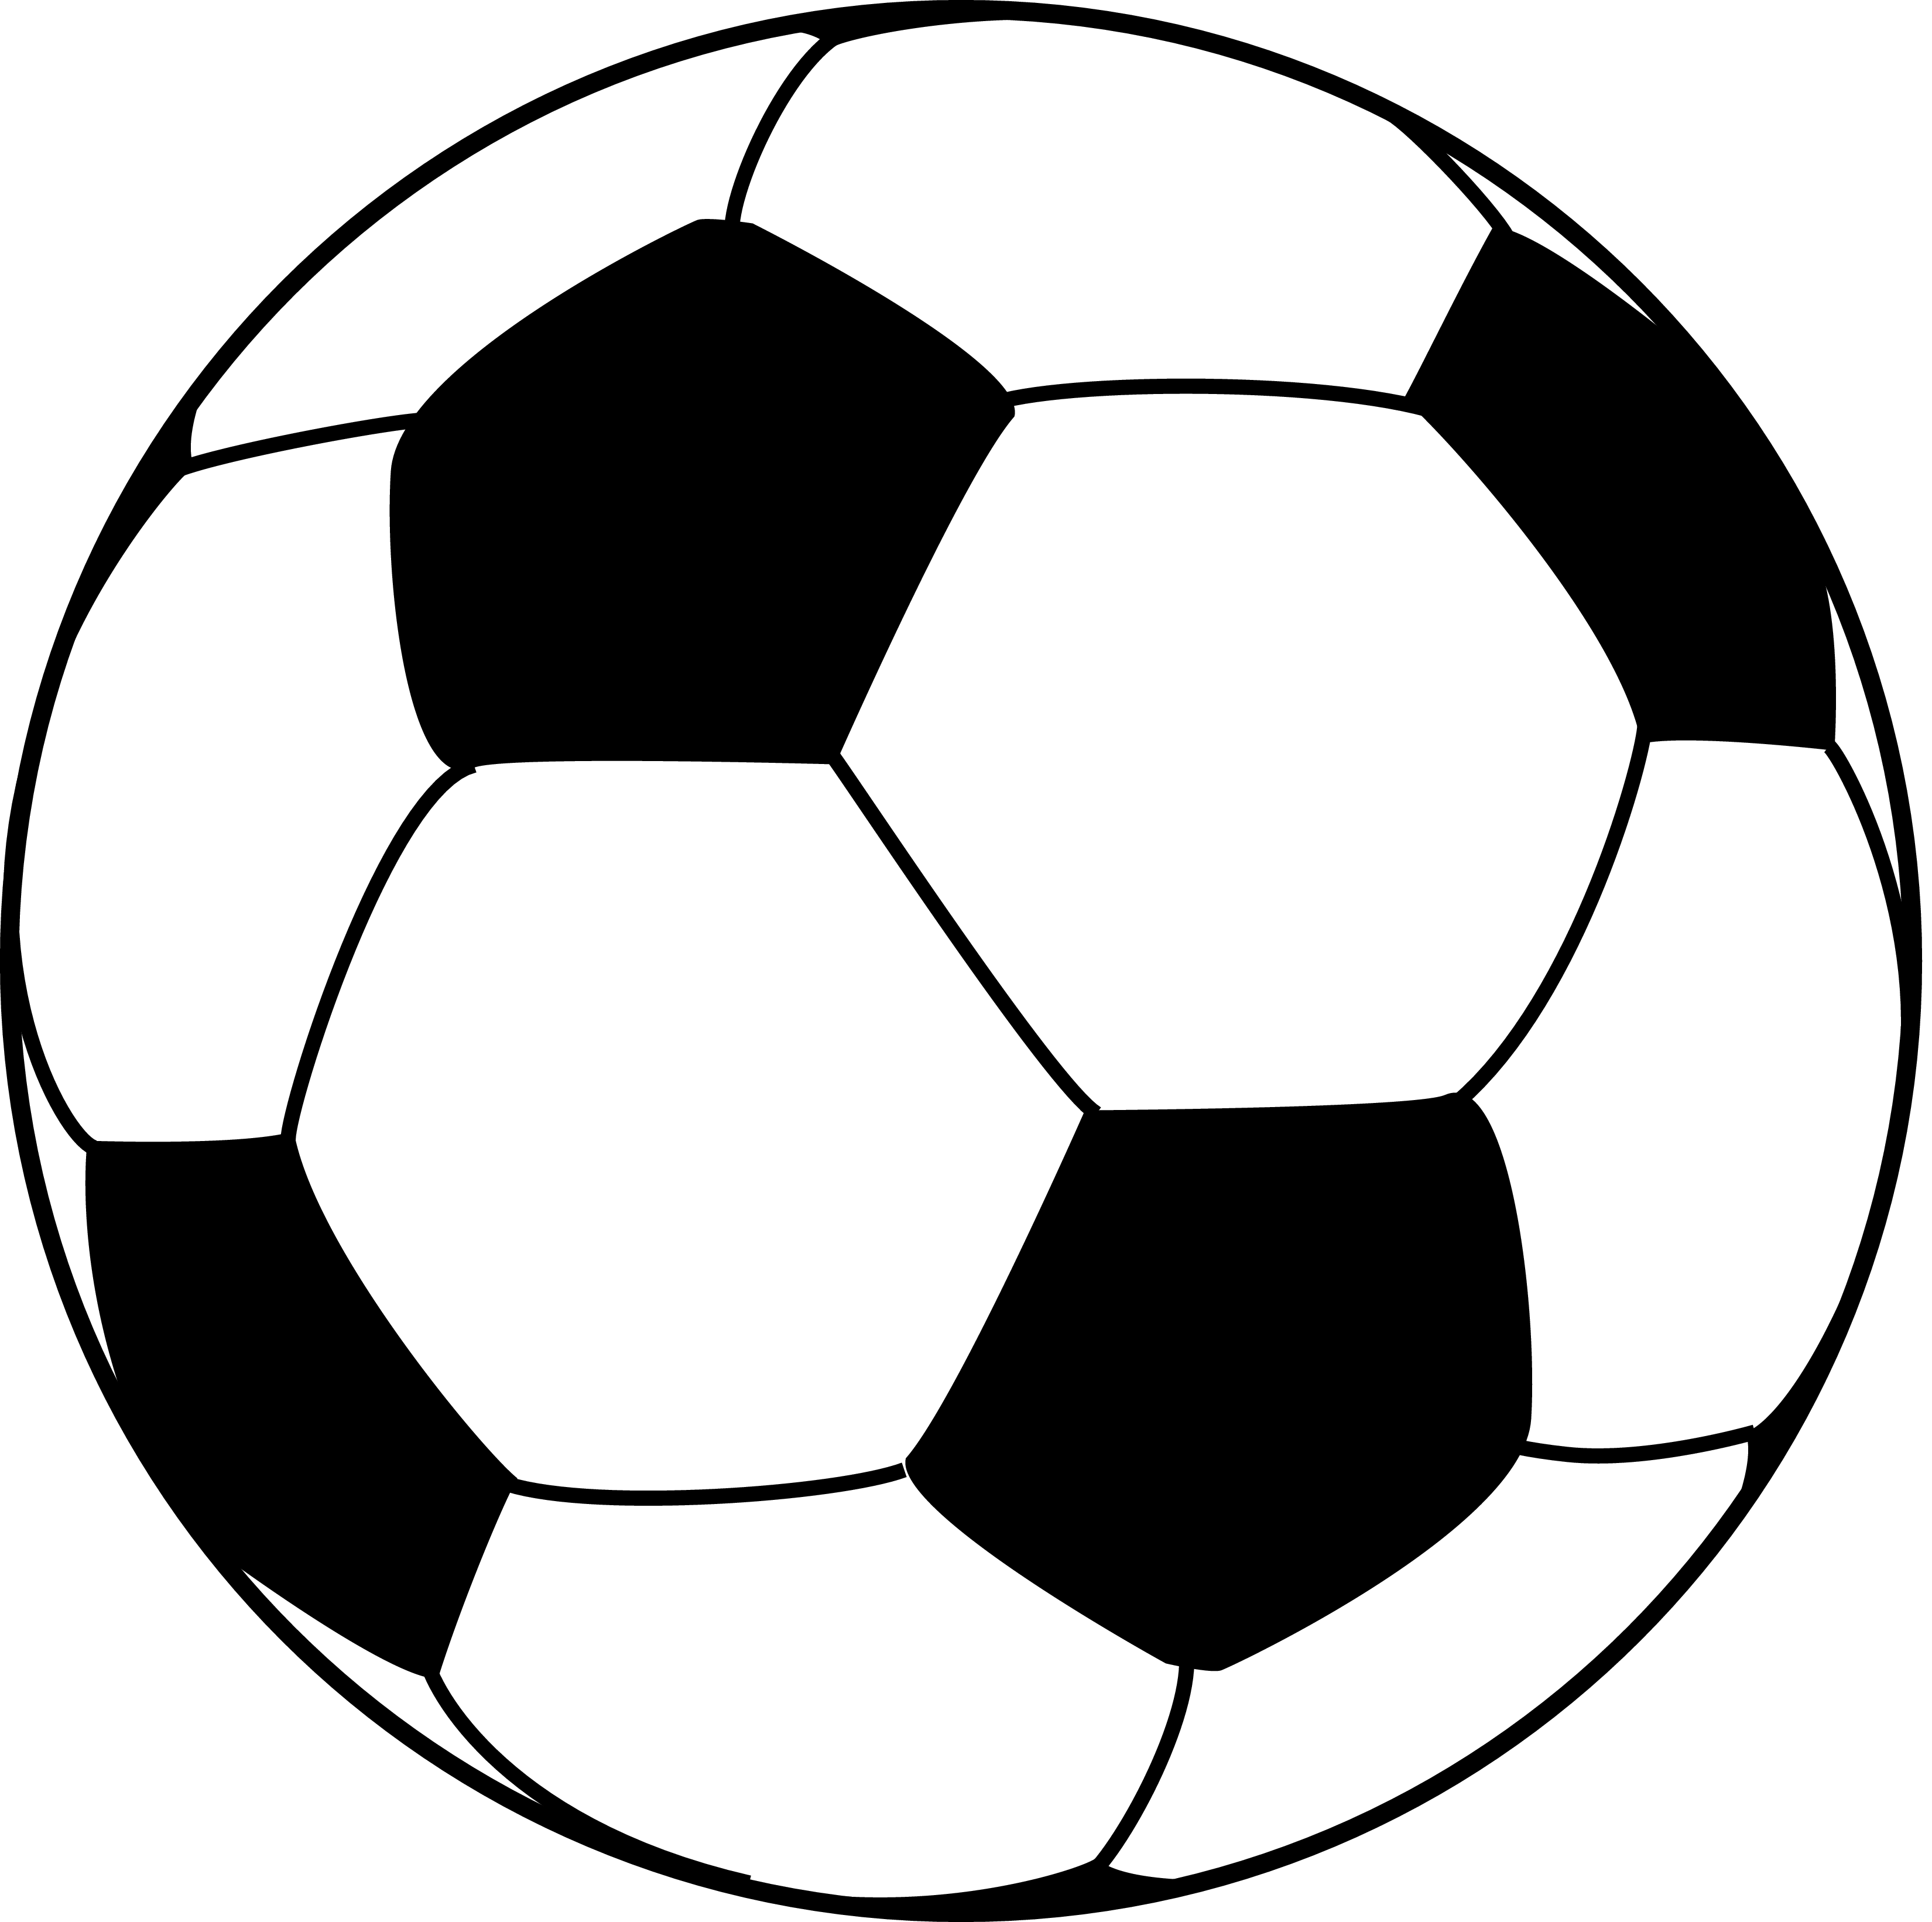 Soccer ball pattern template. Drawing sports clipart transparent download